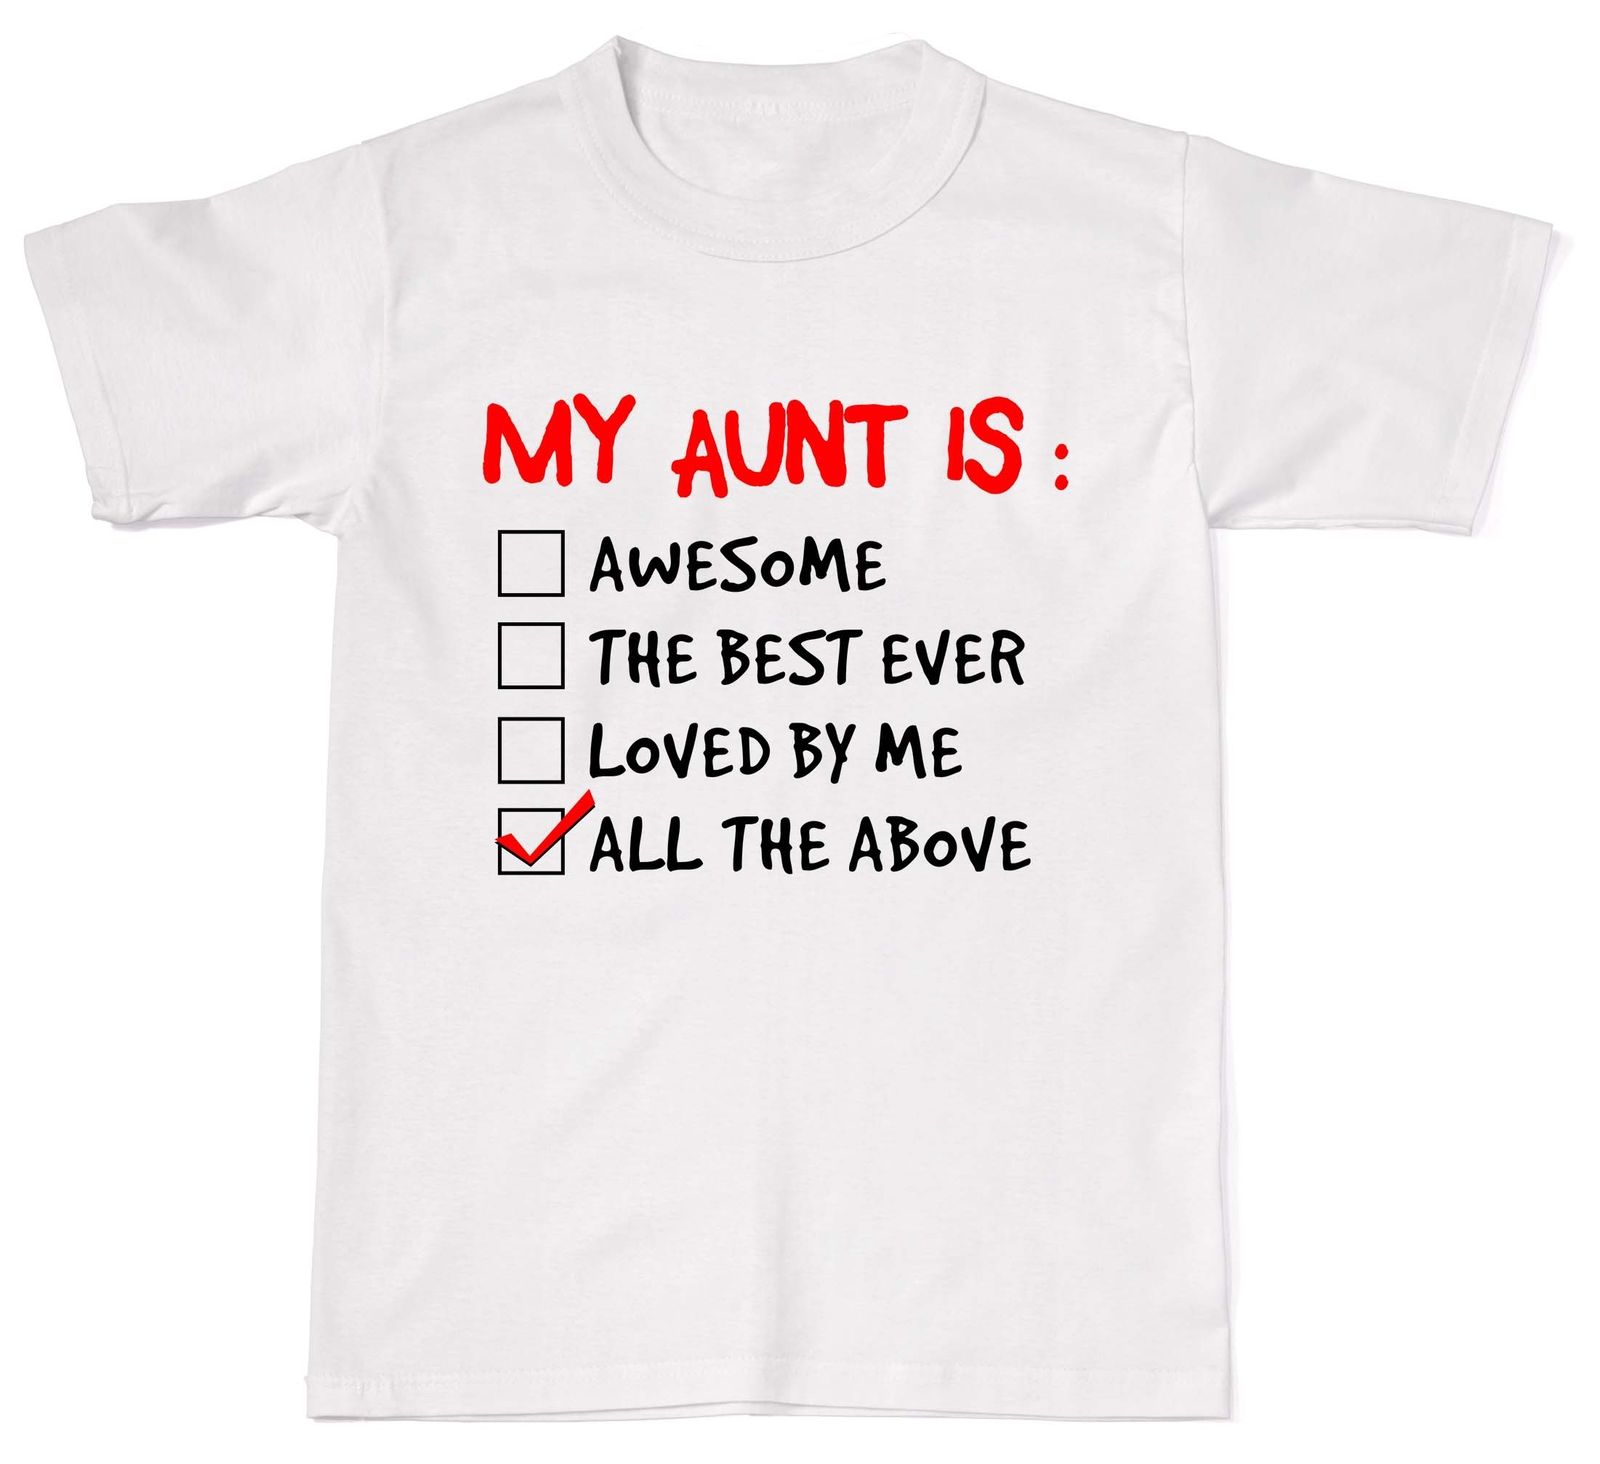 New 2018 Fashion My Aunt Is Awesome Amazing Aunty Unisex T-Shirt T Shirt Cotton